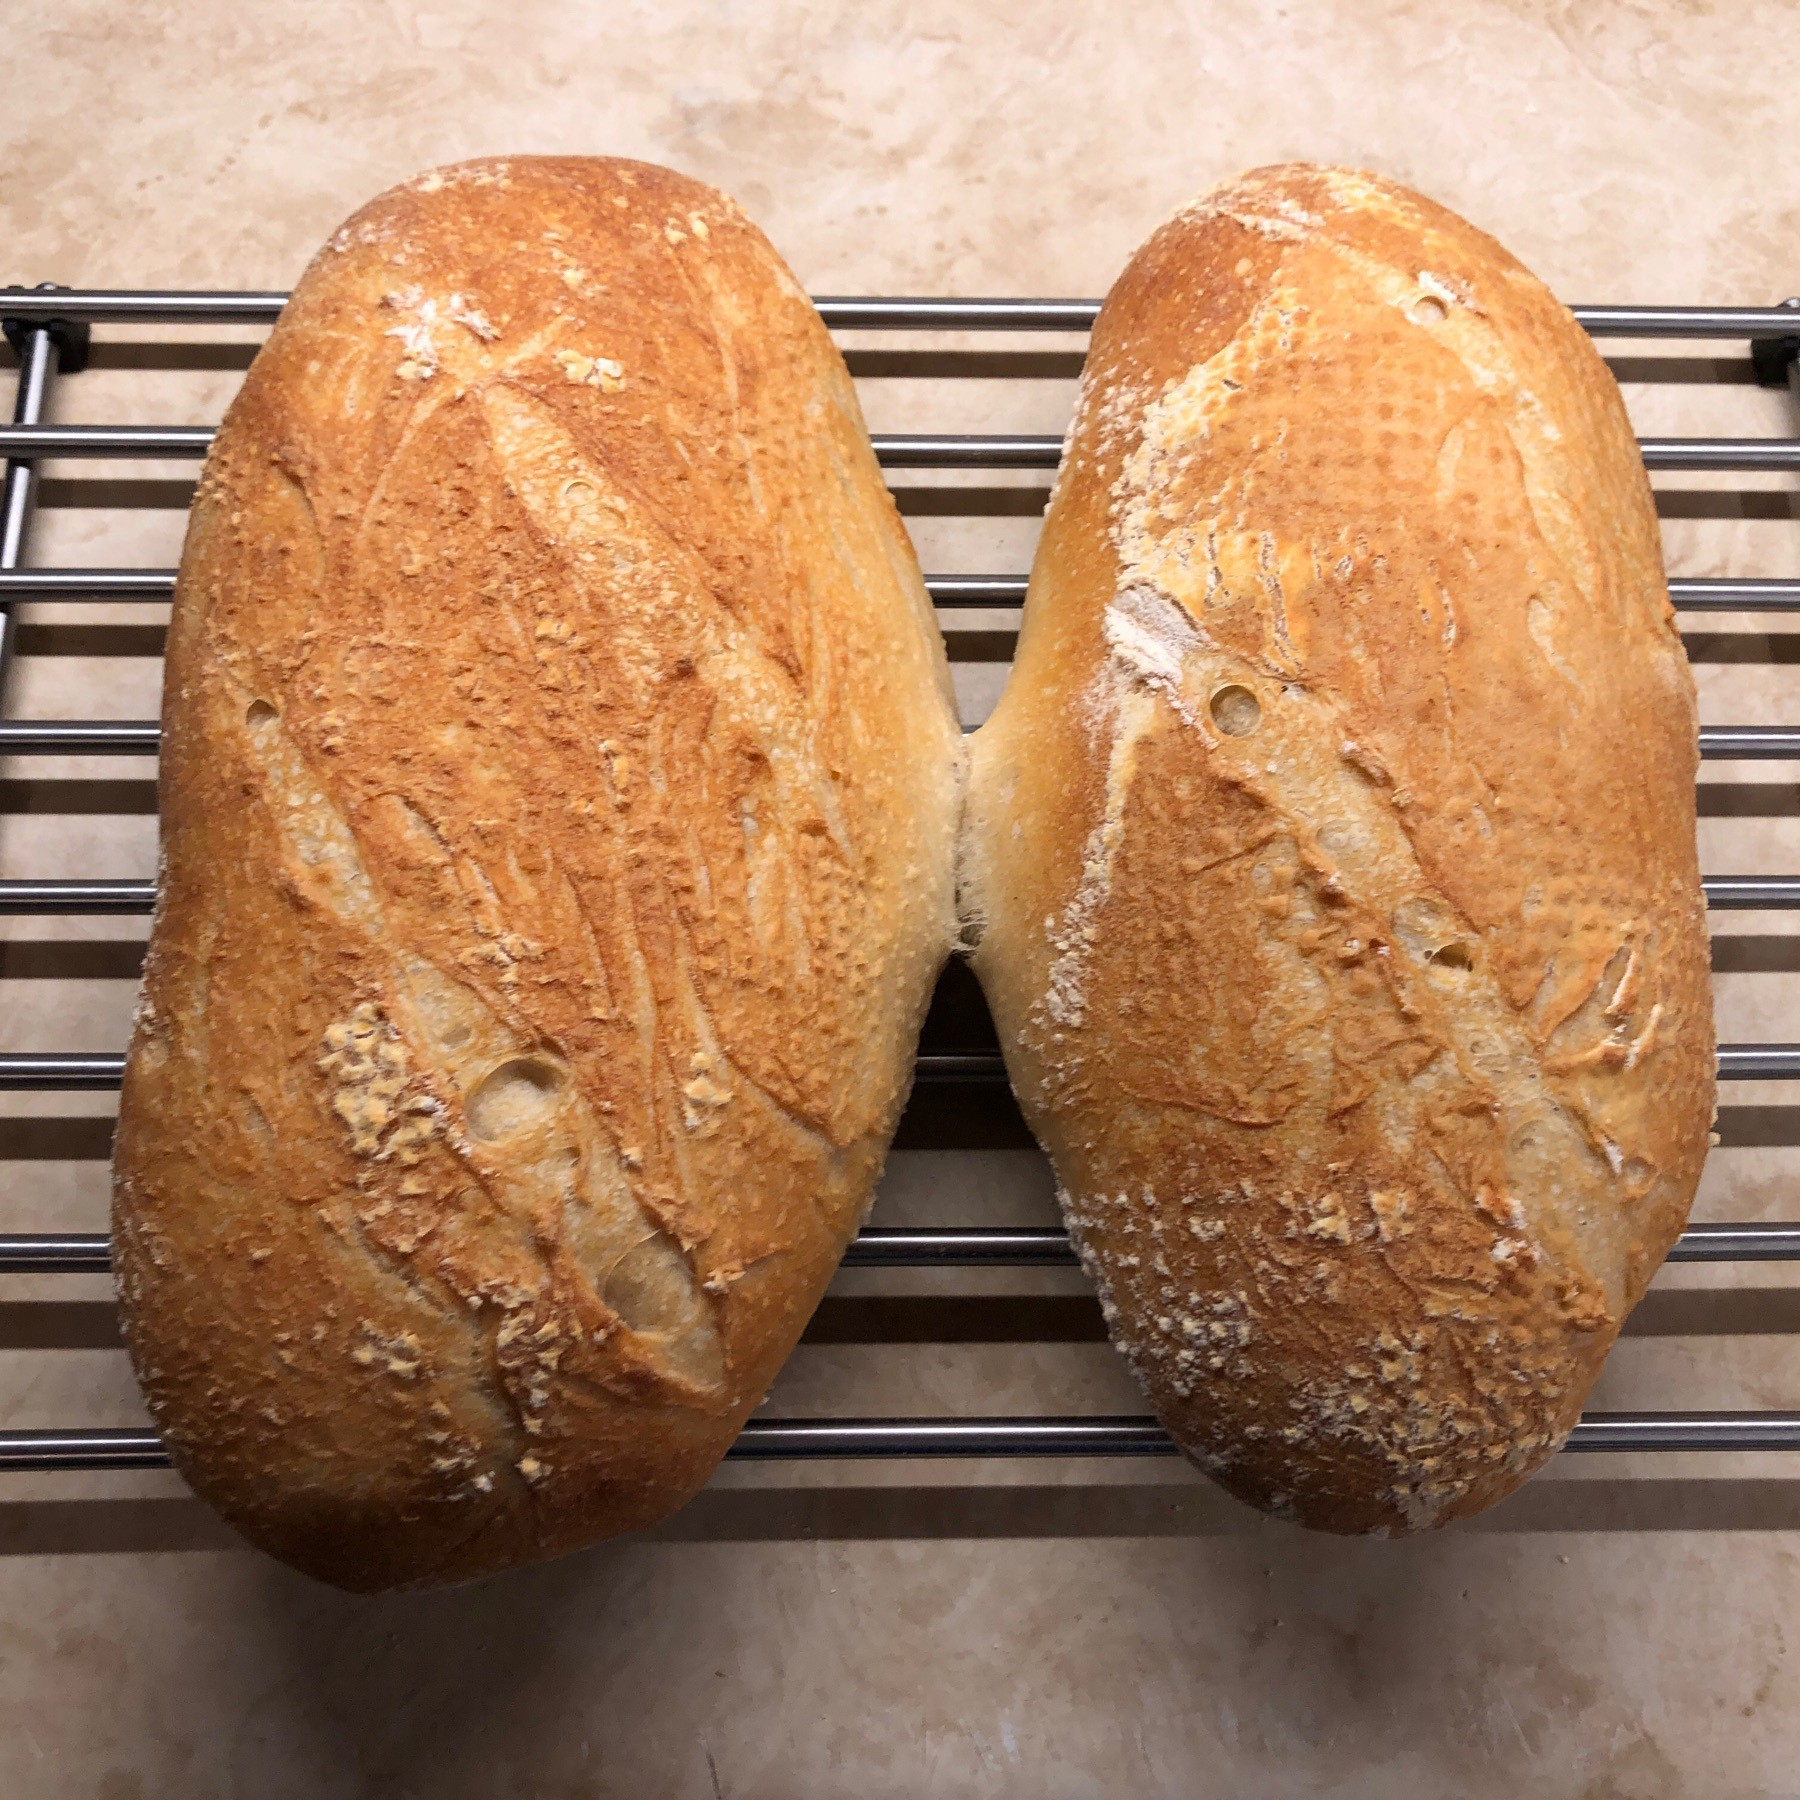 Two loaves of sourdough bread on cooling rack.